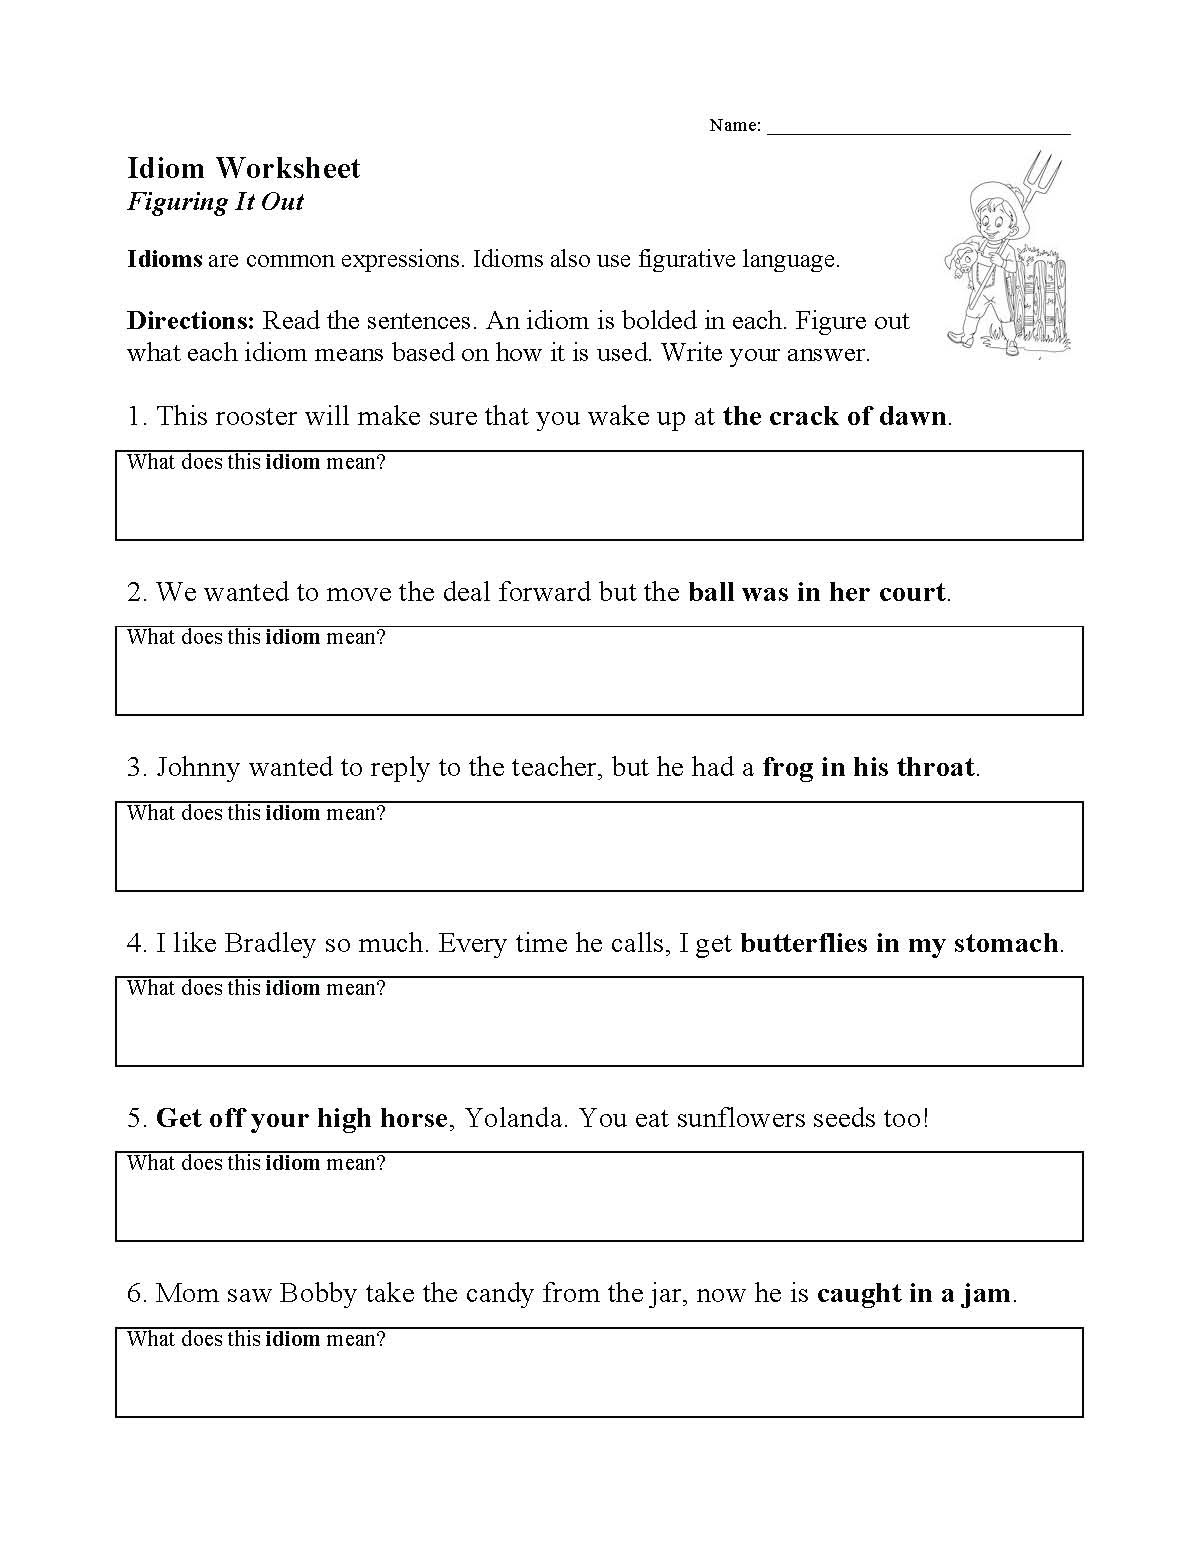 Idiom Worksheets for 2nd Grade Idioms Activity Worksheet